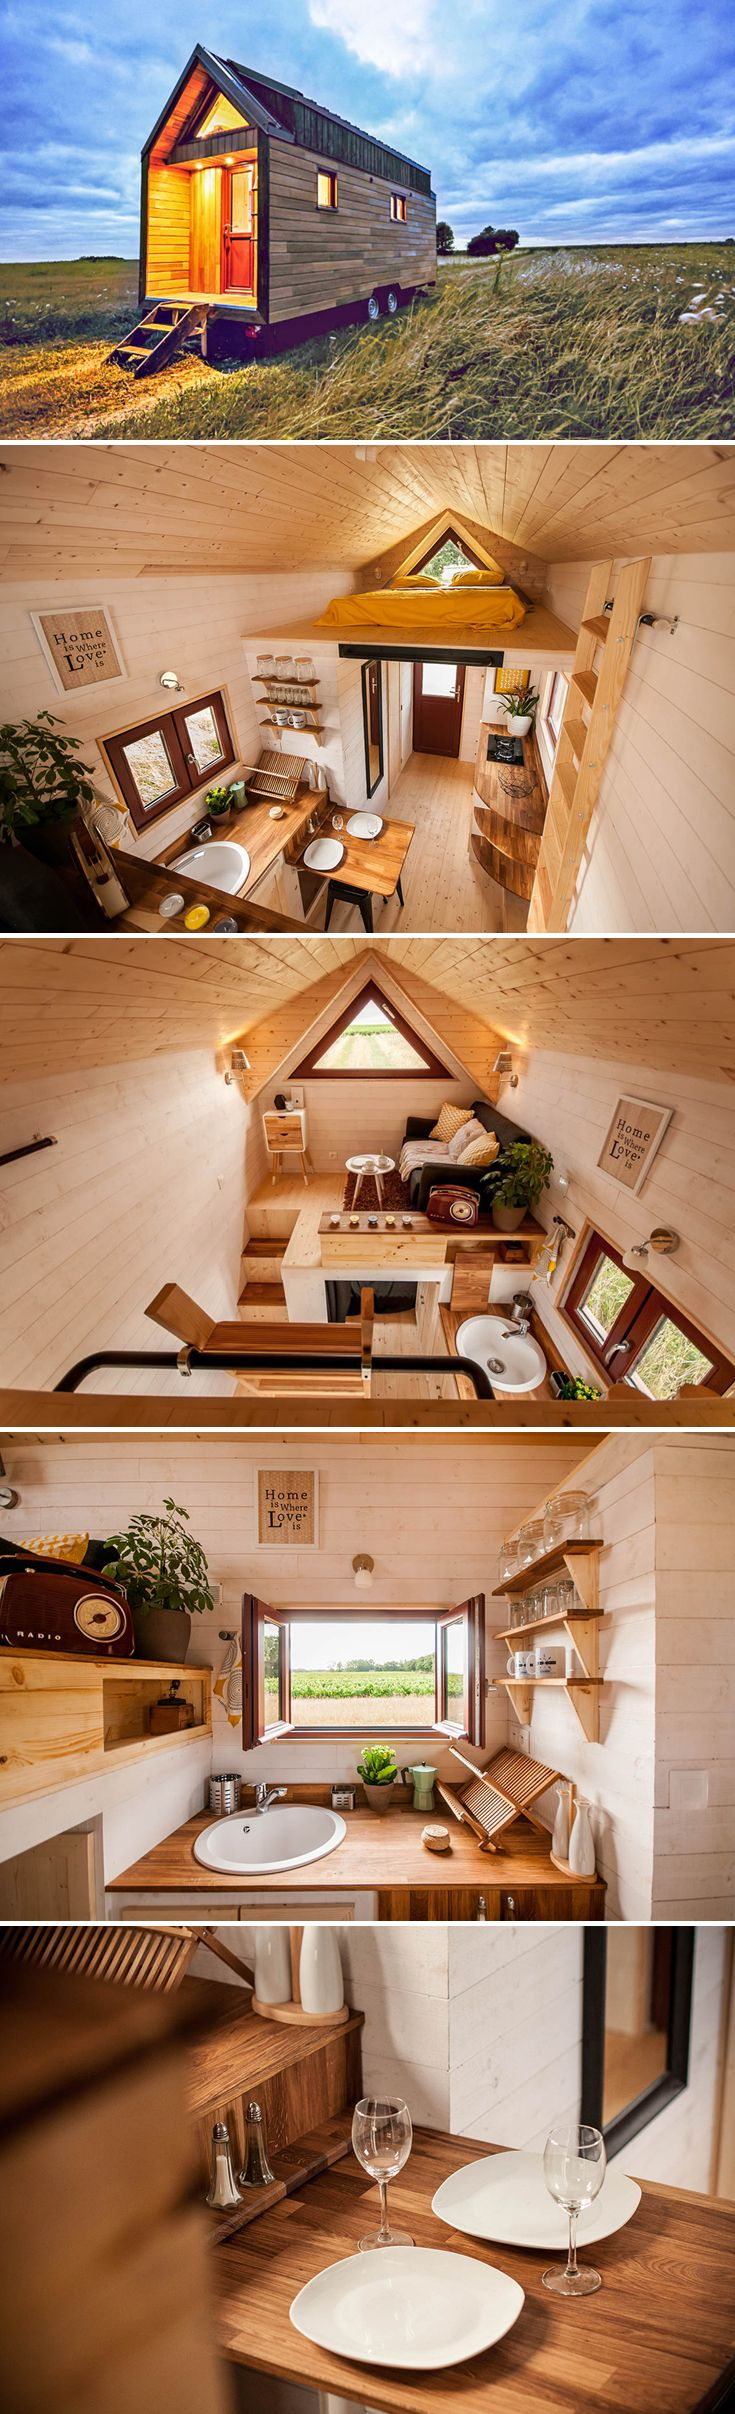 Nantes, France-based Baluchon created this tiny house with a unique layout  featuring an